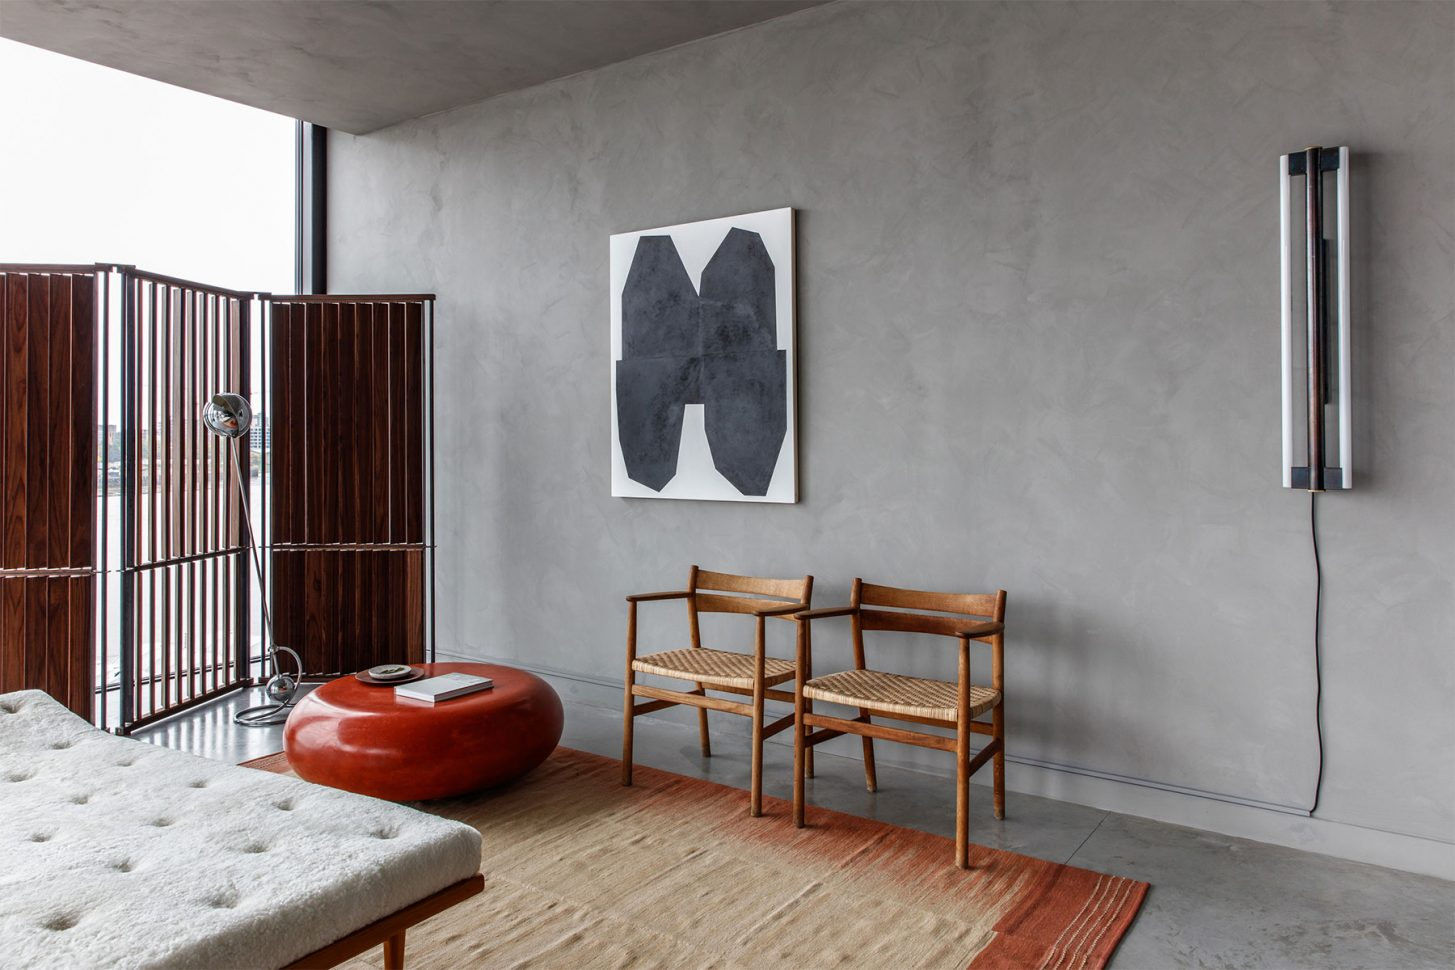 Room divider by Nathalie Schwer, Bruno Mathsson daybed & chrome floor lamp from  Jacksons , rug from  Conran , coffee bean table by  McCollin Bryan , chairs from Else Schneider, painting by  Michael Wall , wall lamp by  Frama